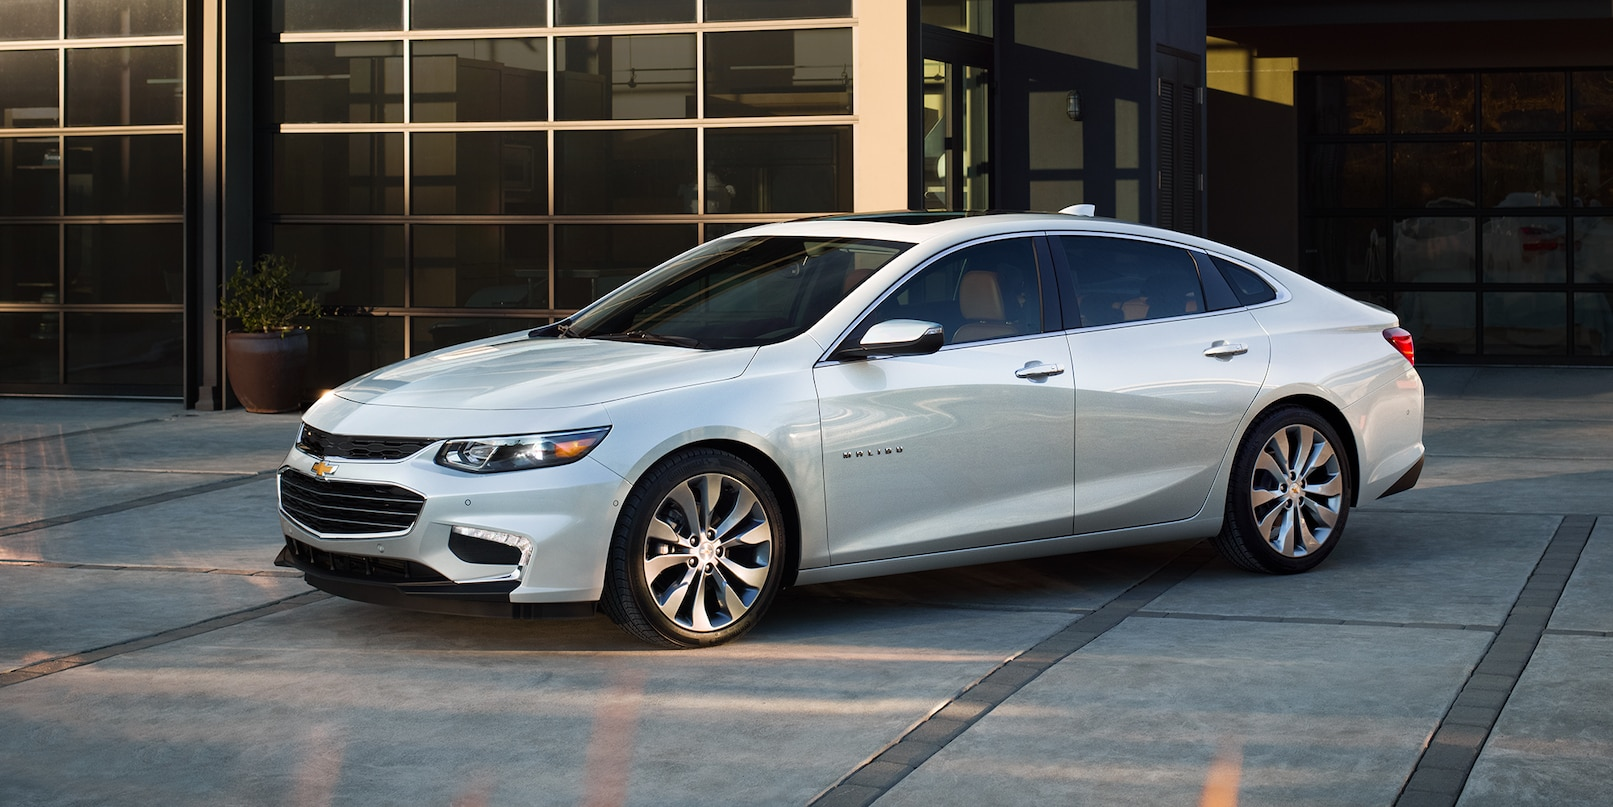 2018 Chevrolet Malibu Leasing in Elk Grove, CA